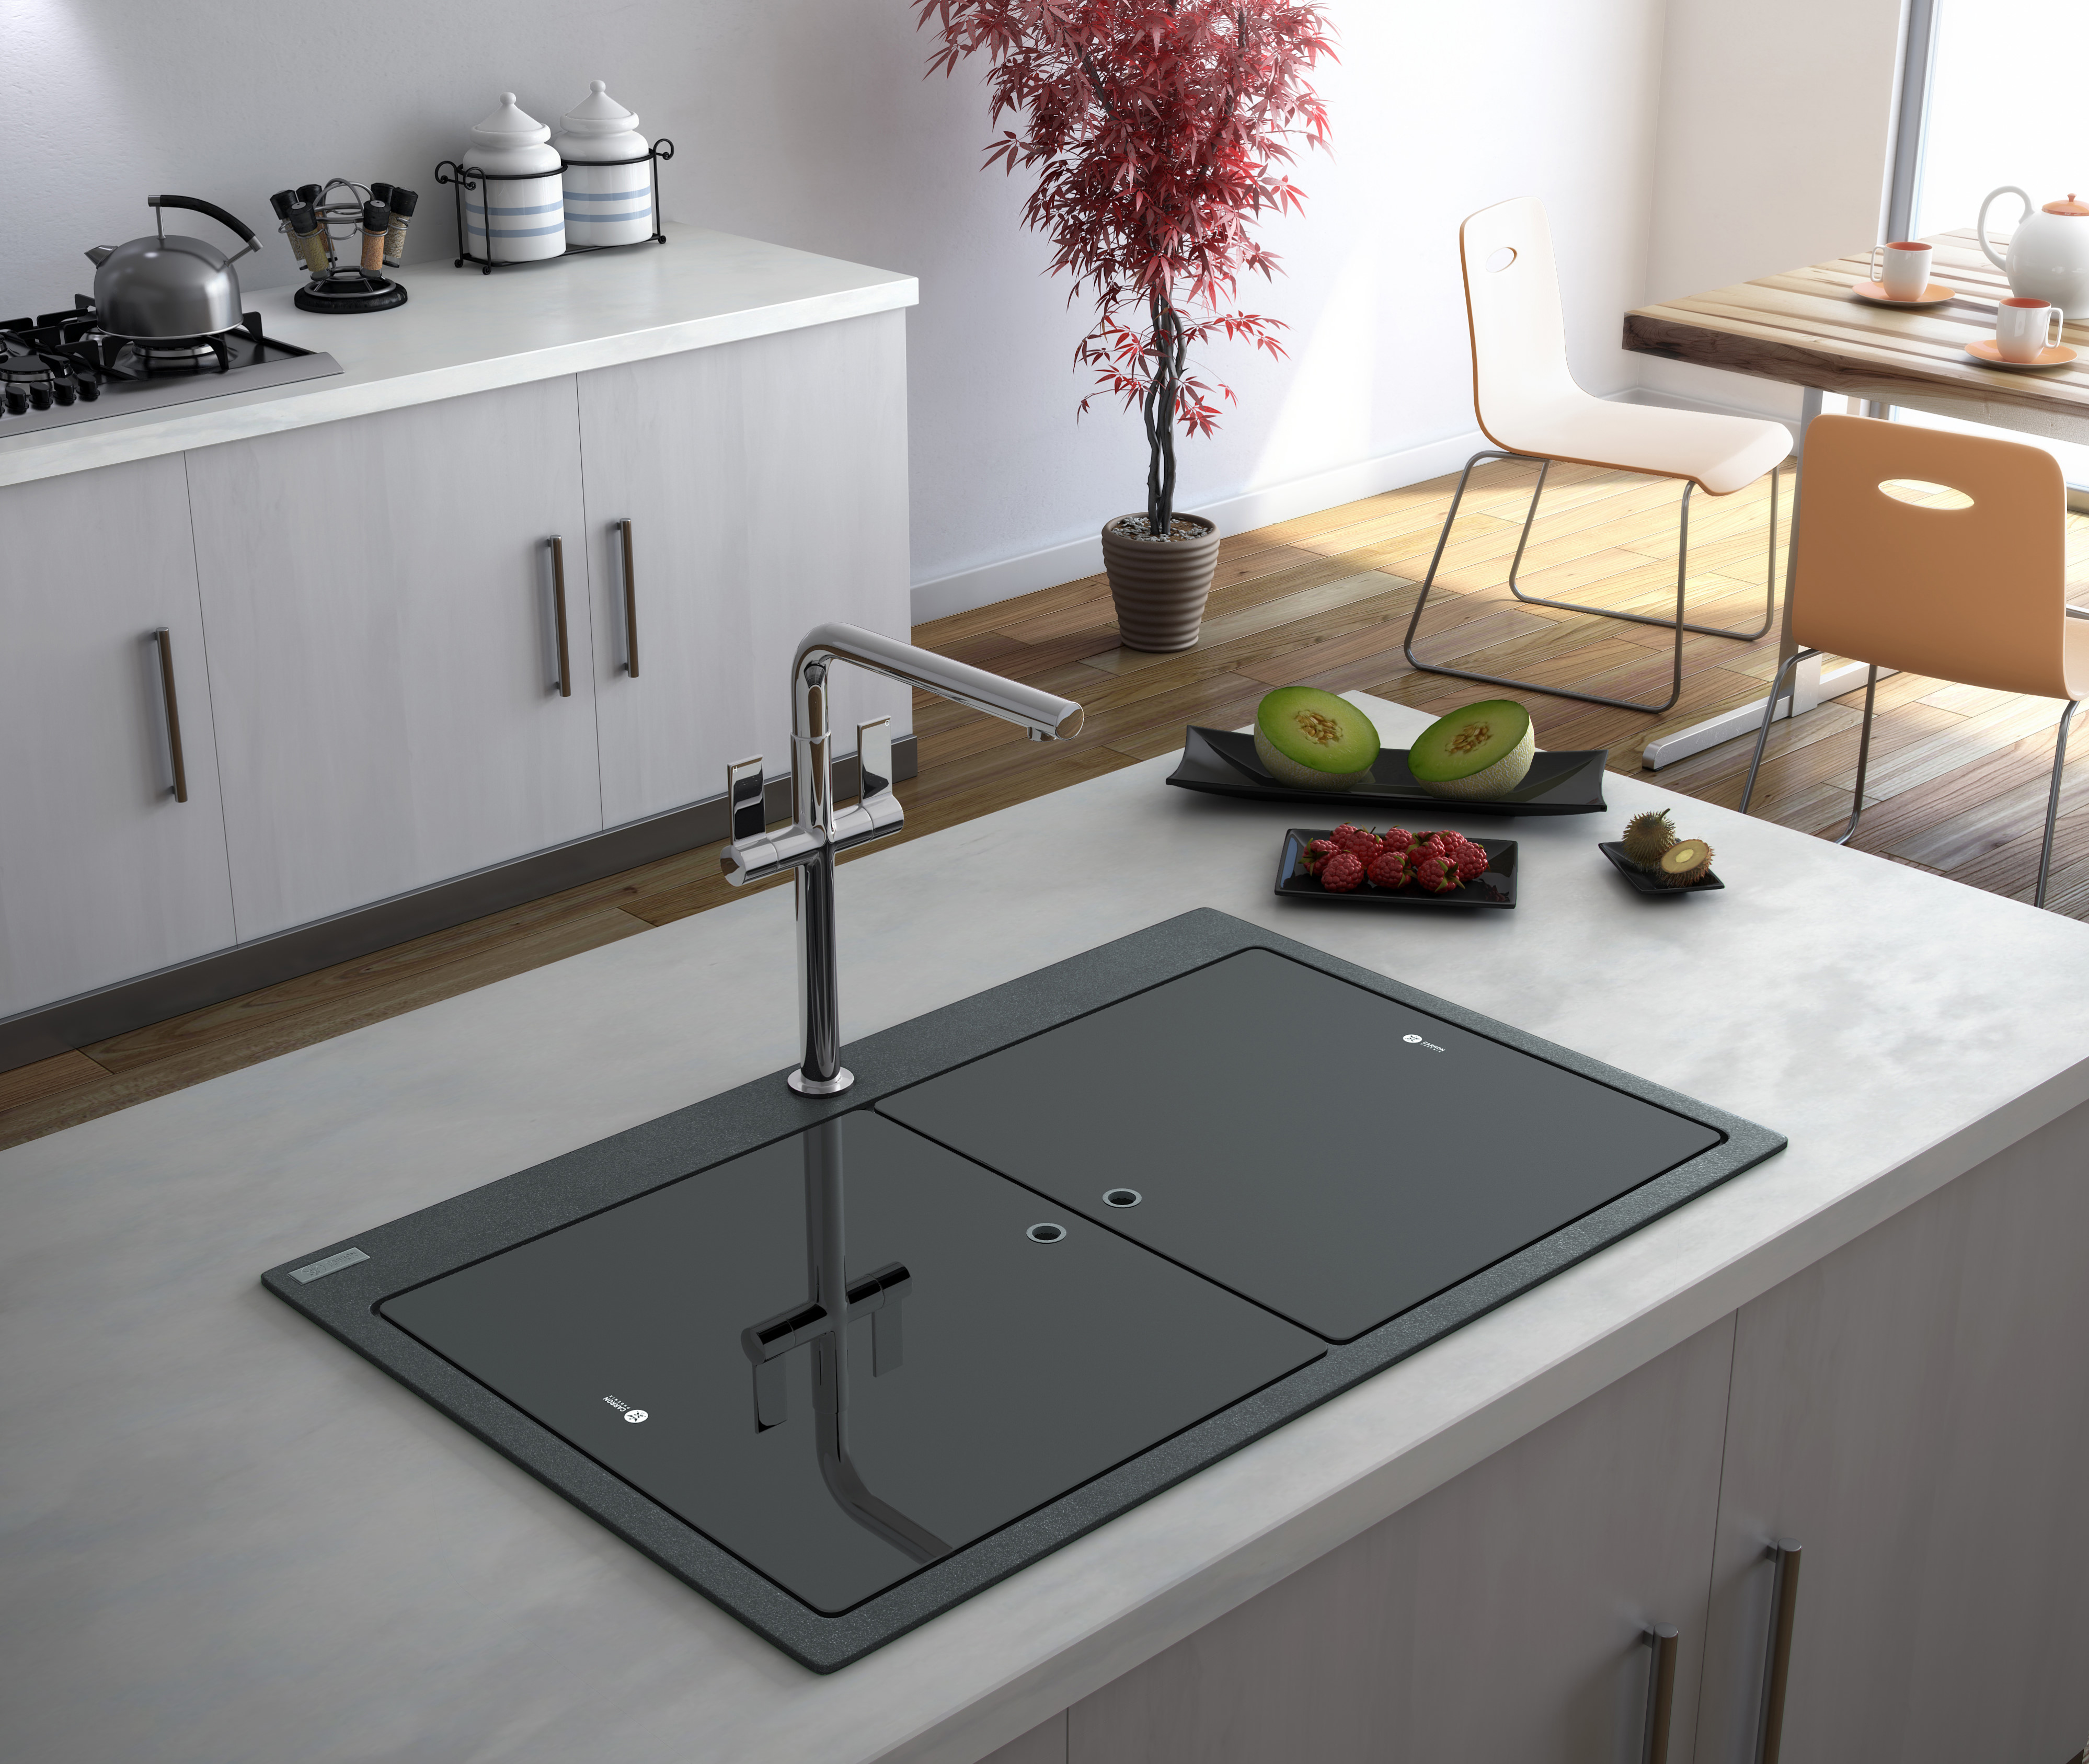 Crushed Granite Sink : Samoa -the brand new granite sink from Carron Phoenix that?s hard ...